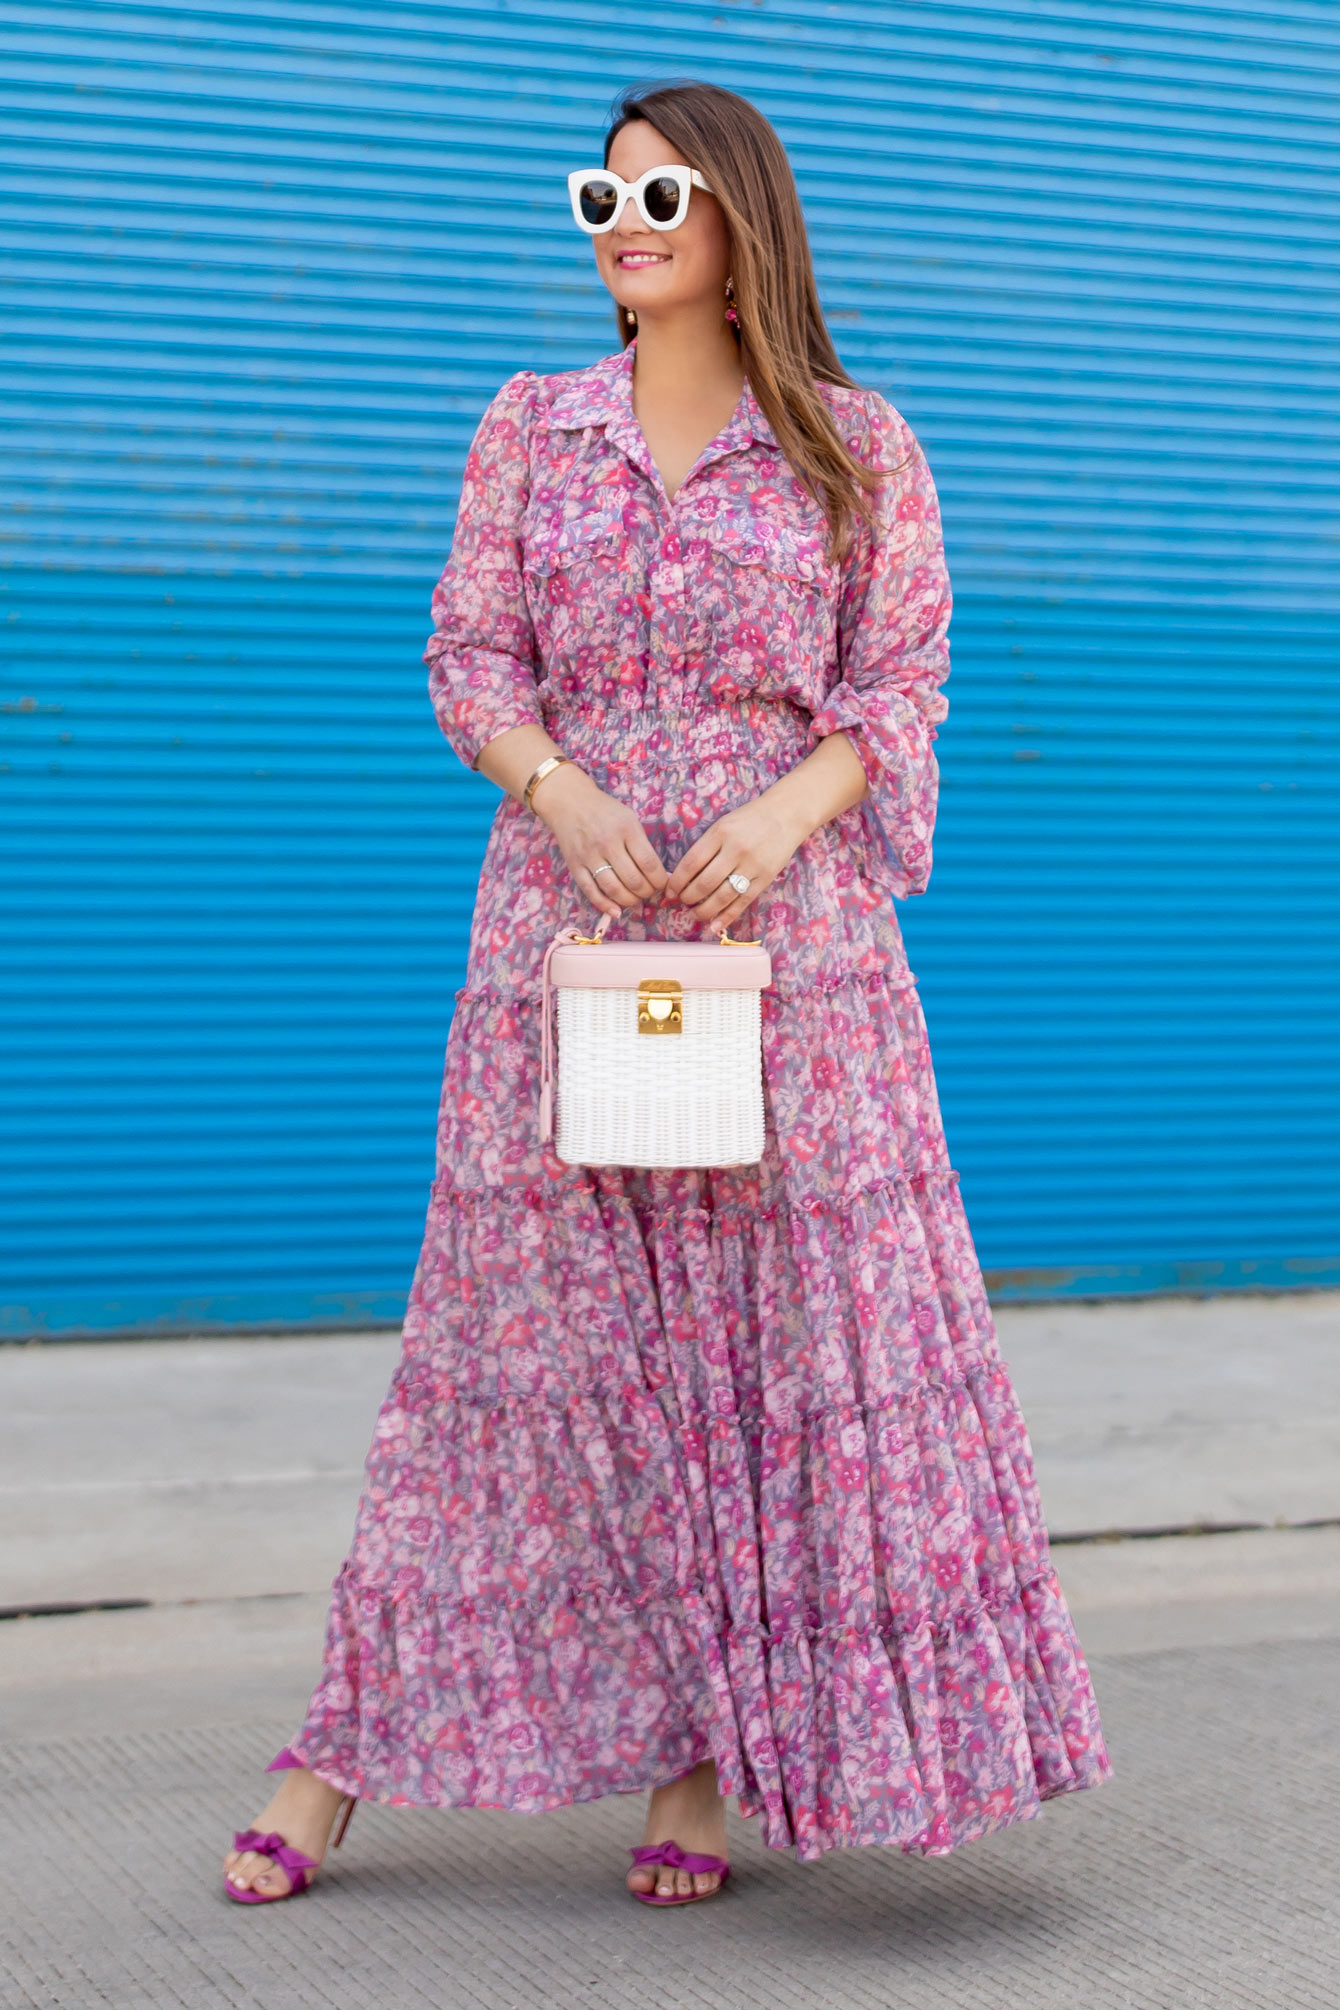 MISA Los Angeles Floral Maxi Dress